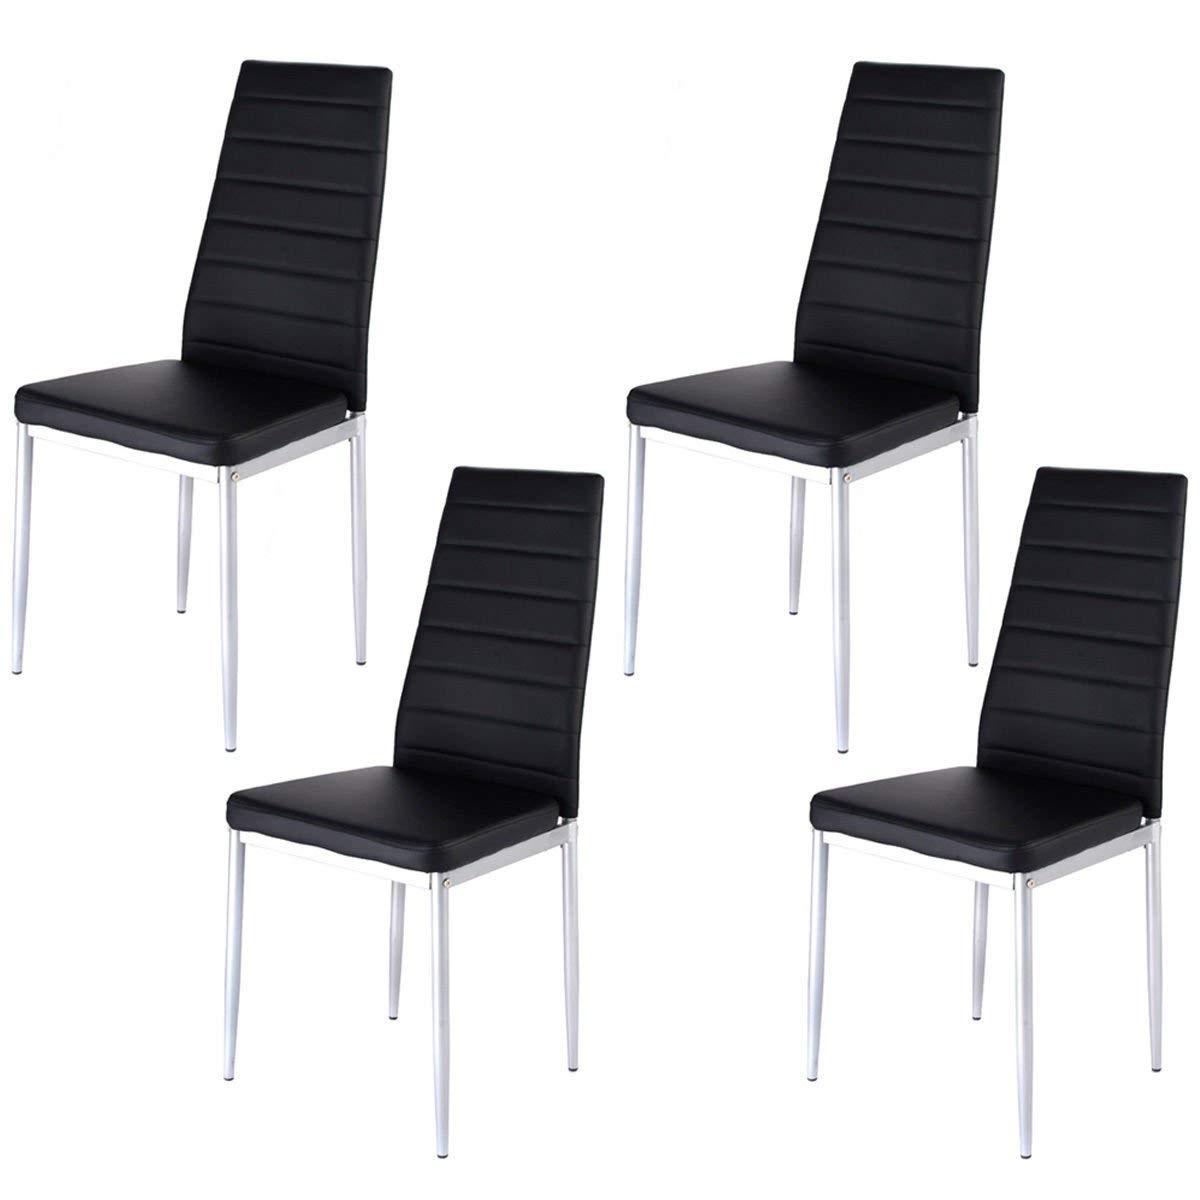 Most Popular Alcora Dining Chairs For Amazon – Giantex Set Of 4 Pu Leather Dining Side Chairs Elegant (View 22 of 25)